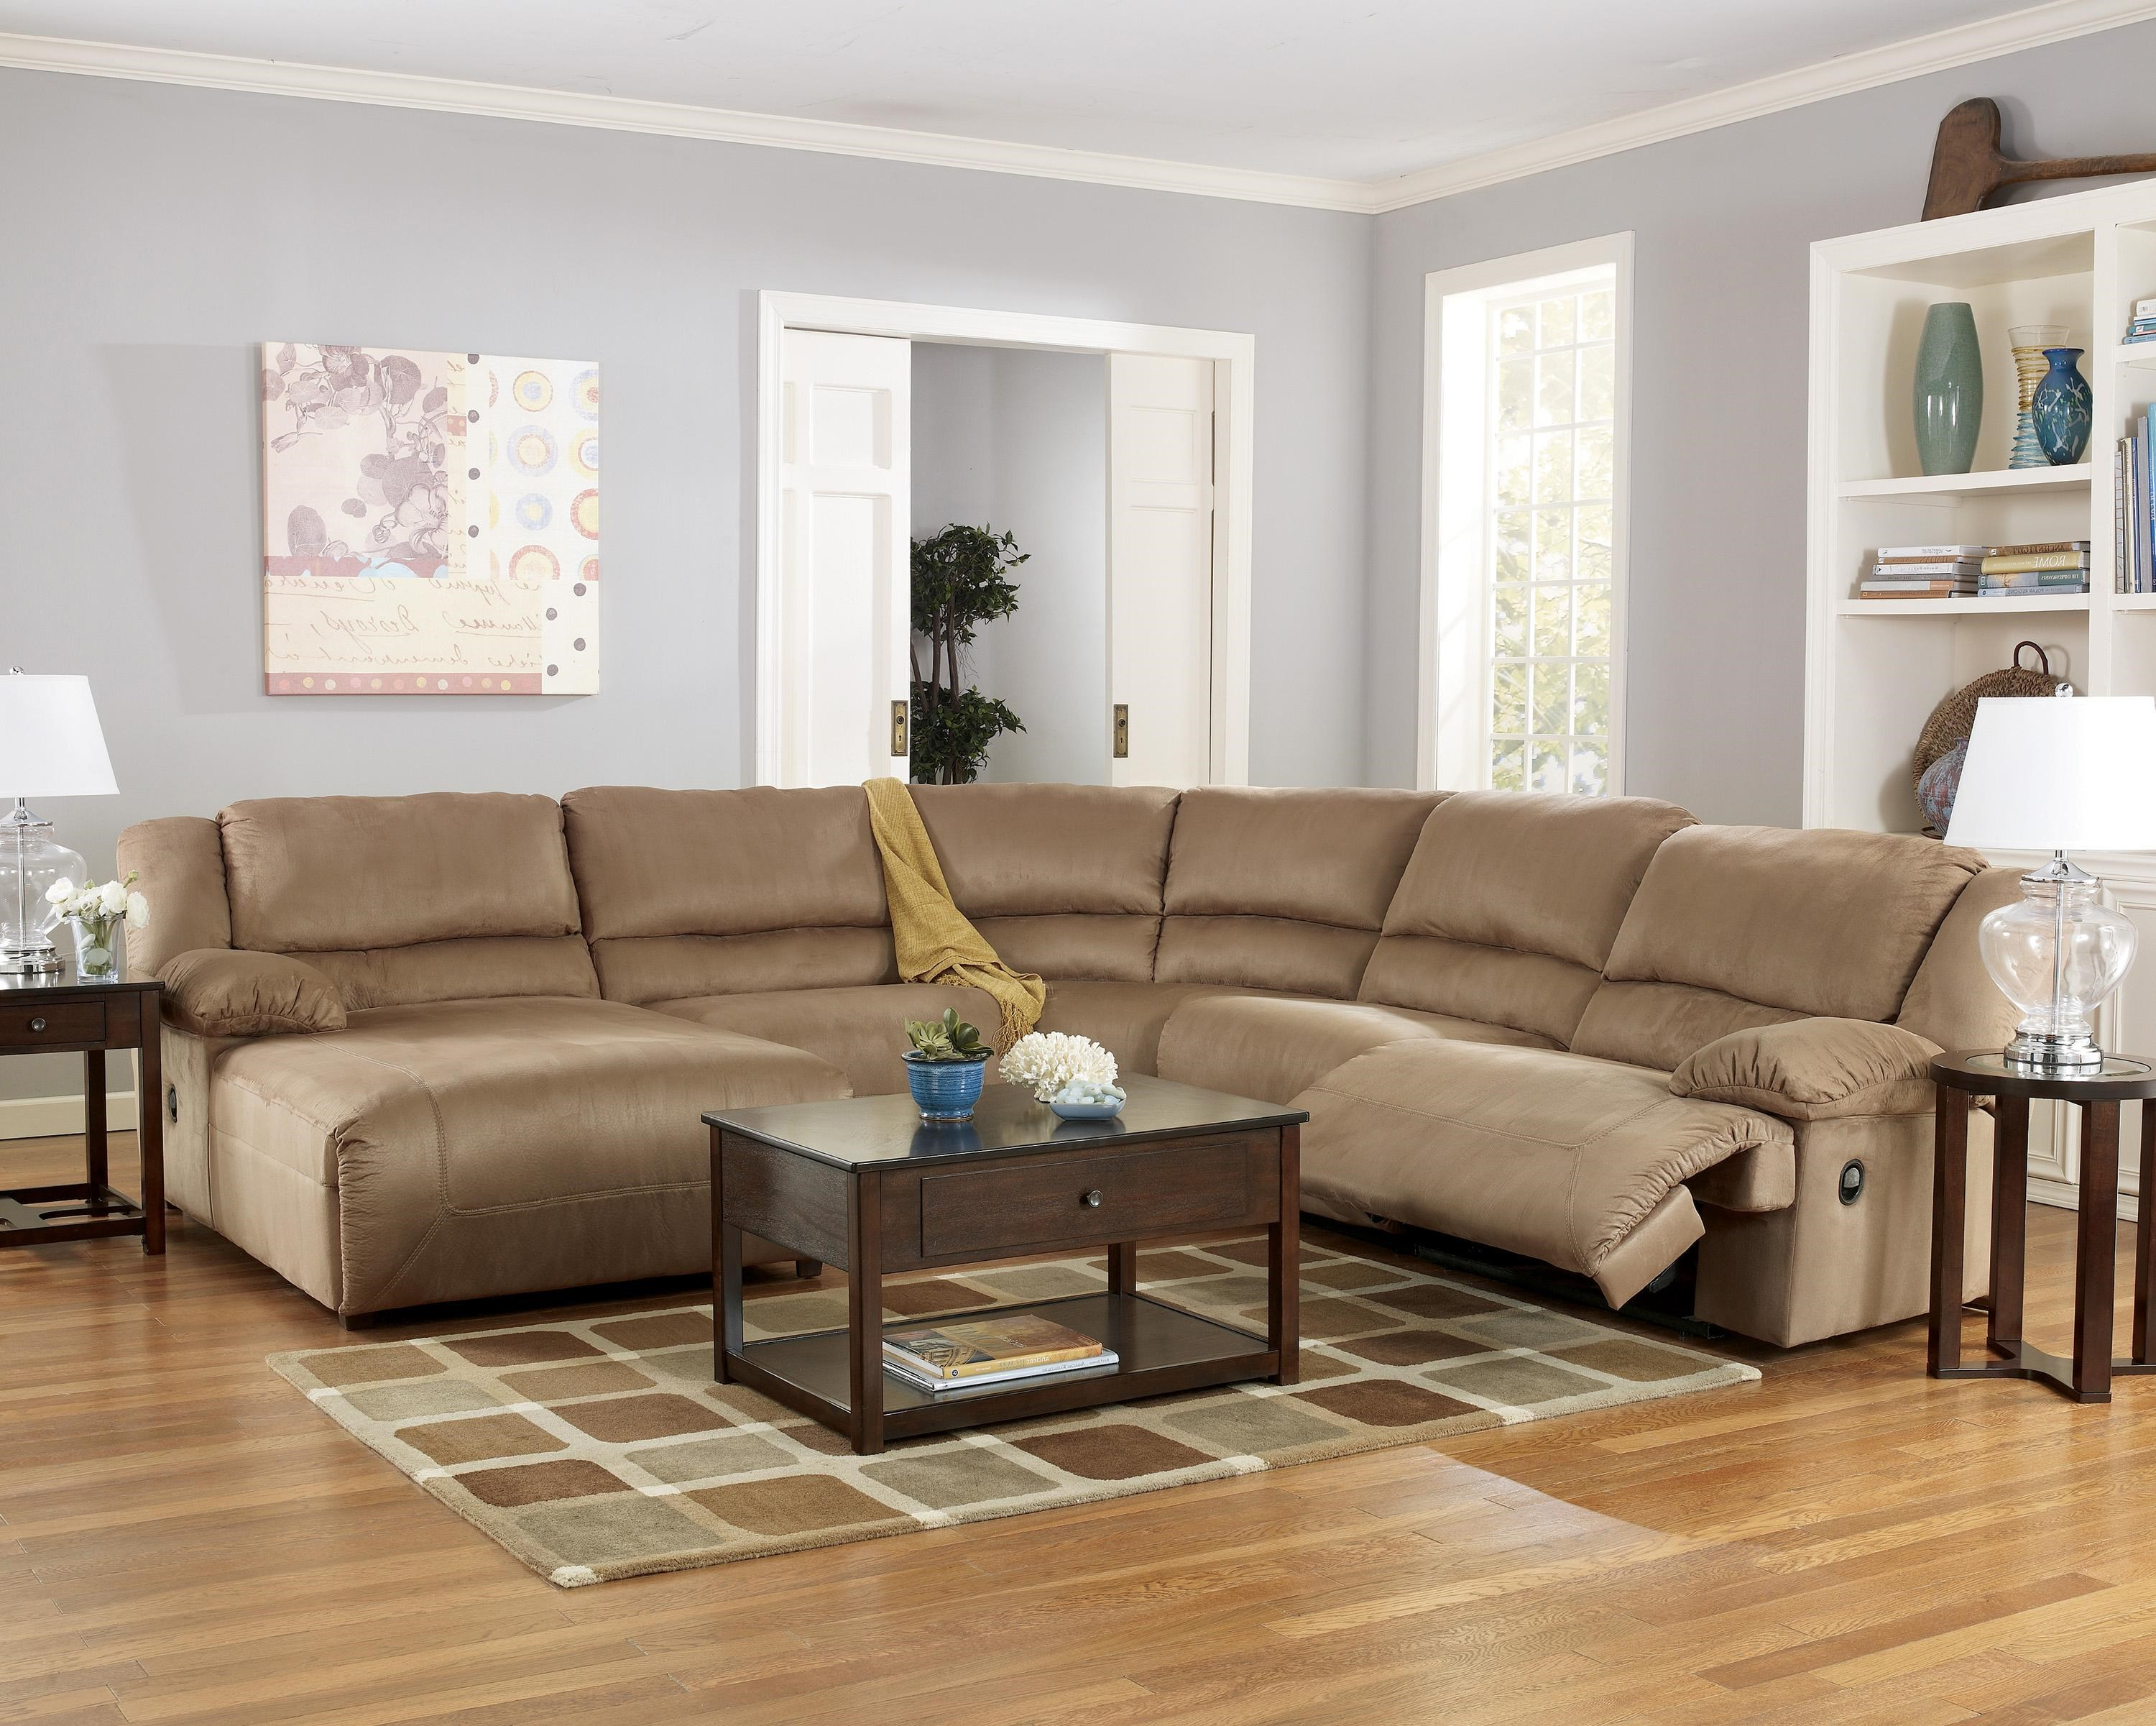 Ashley Furniture Sectionals Ashley Furniture Sectional Ashley